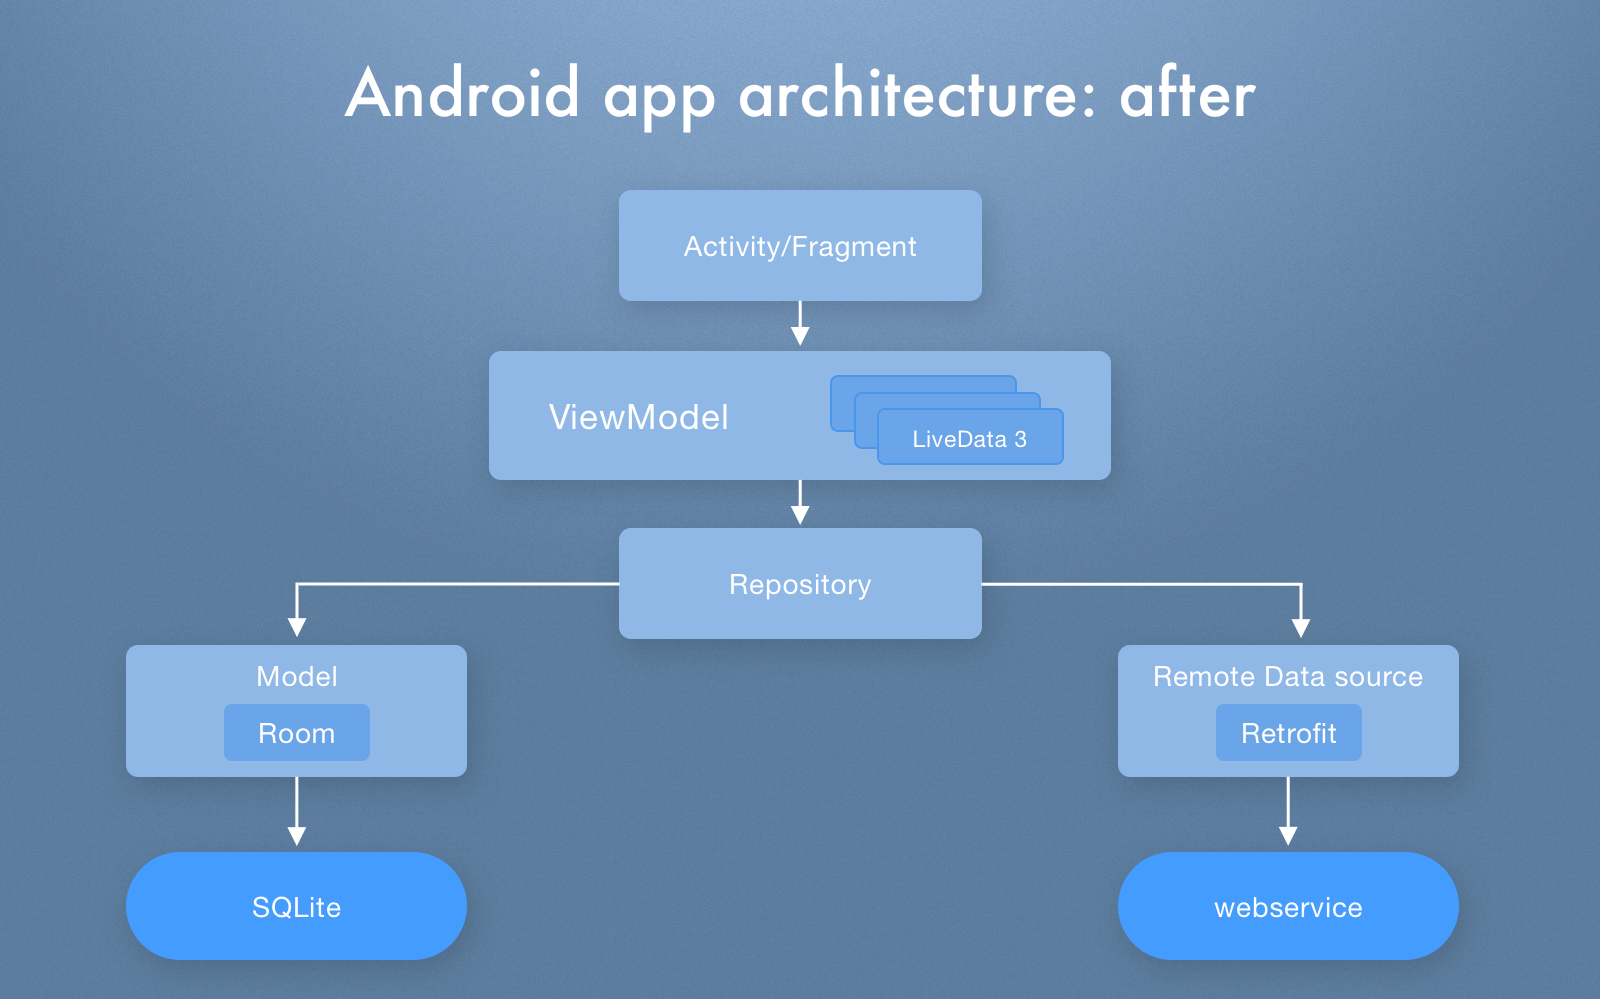 Android app architecture after